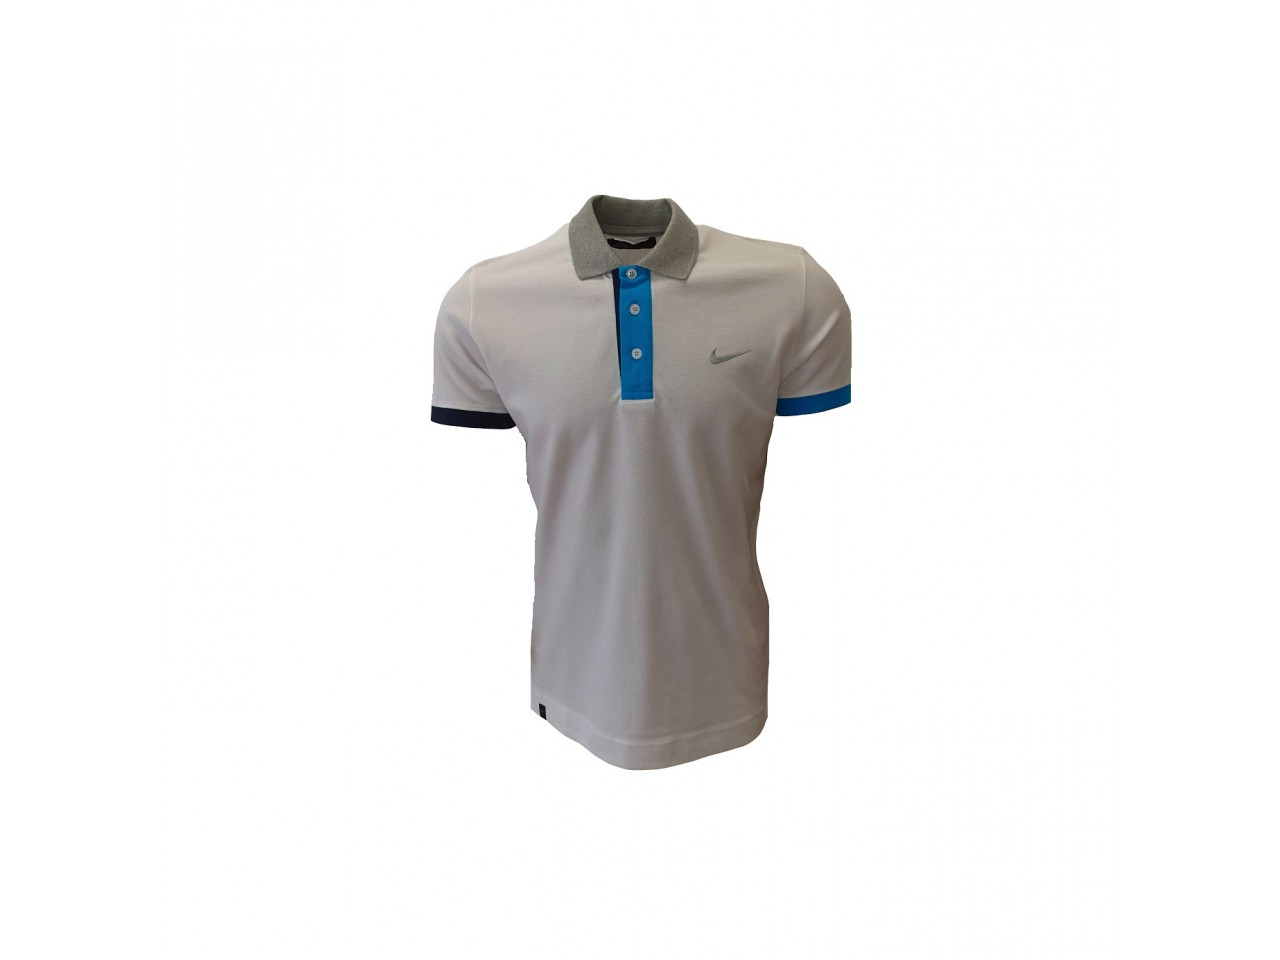 Nike Polo T-Shirt White Light Blue Light Grey